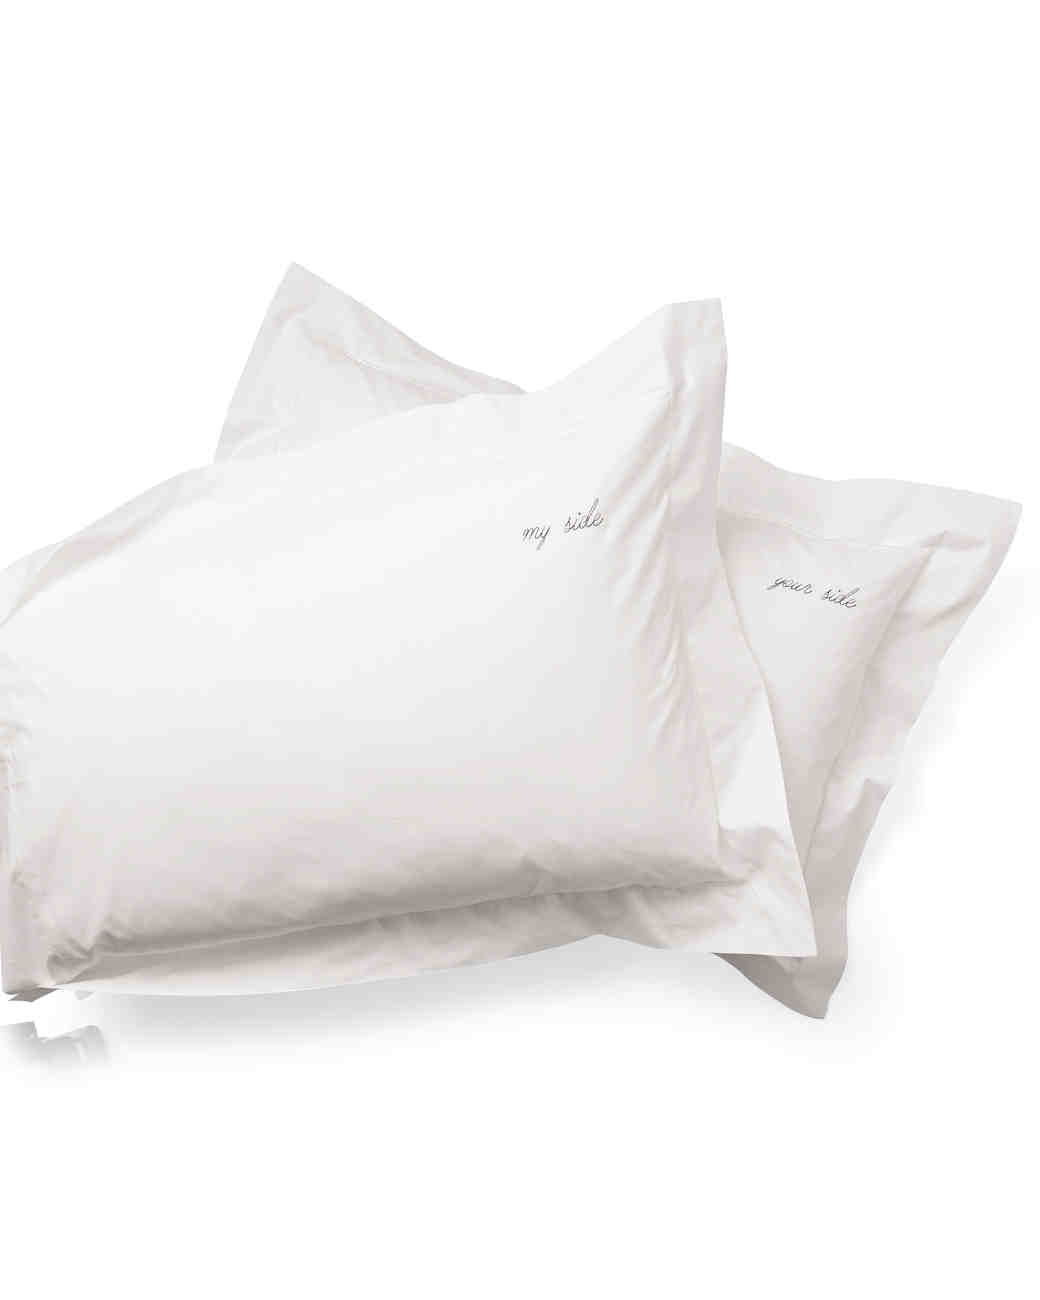 hill-house-home-yours-mine-pillows-254-d112927.jpg